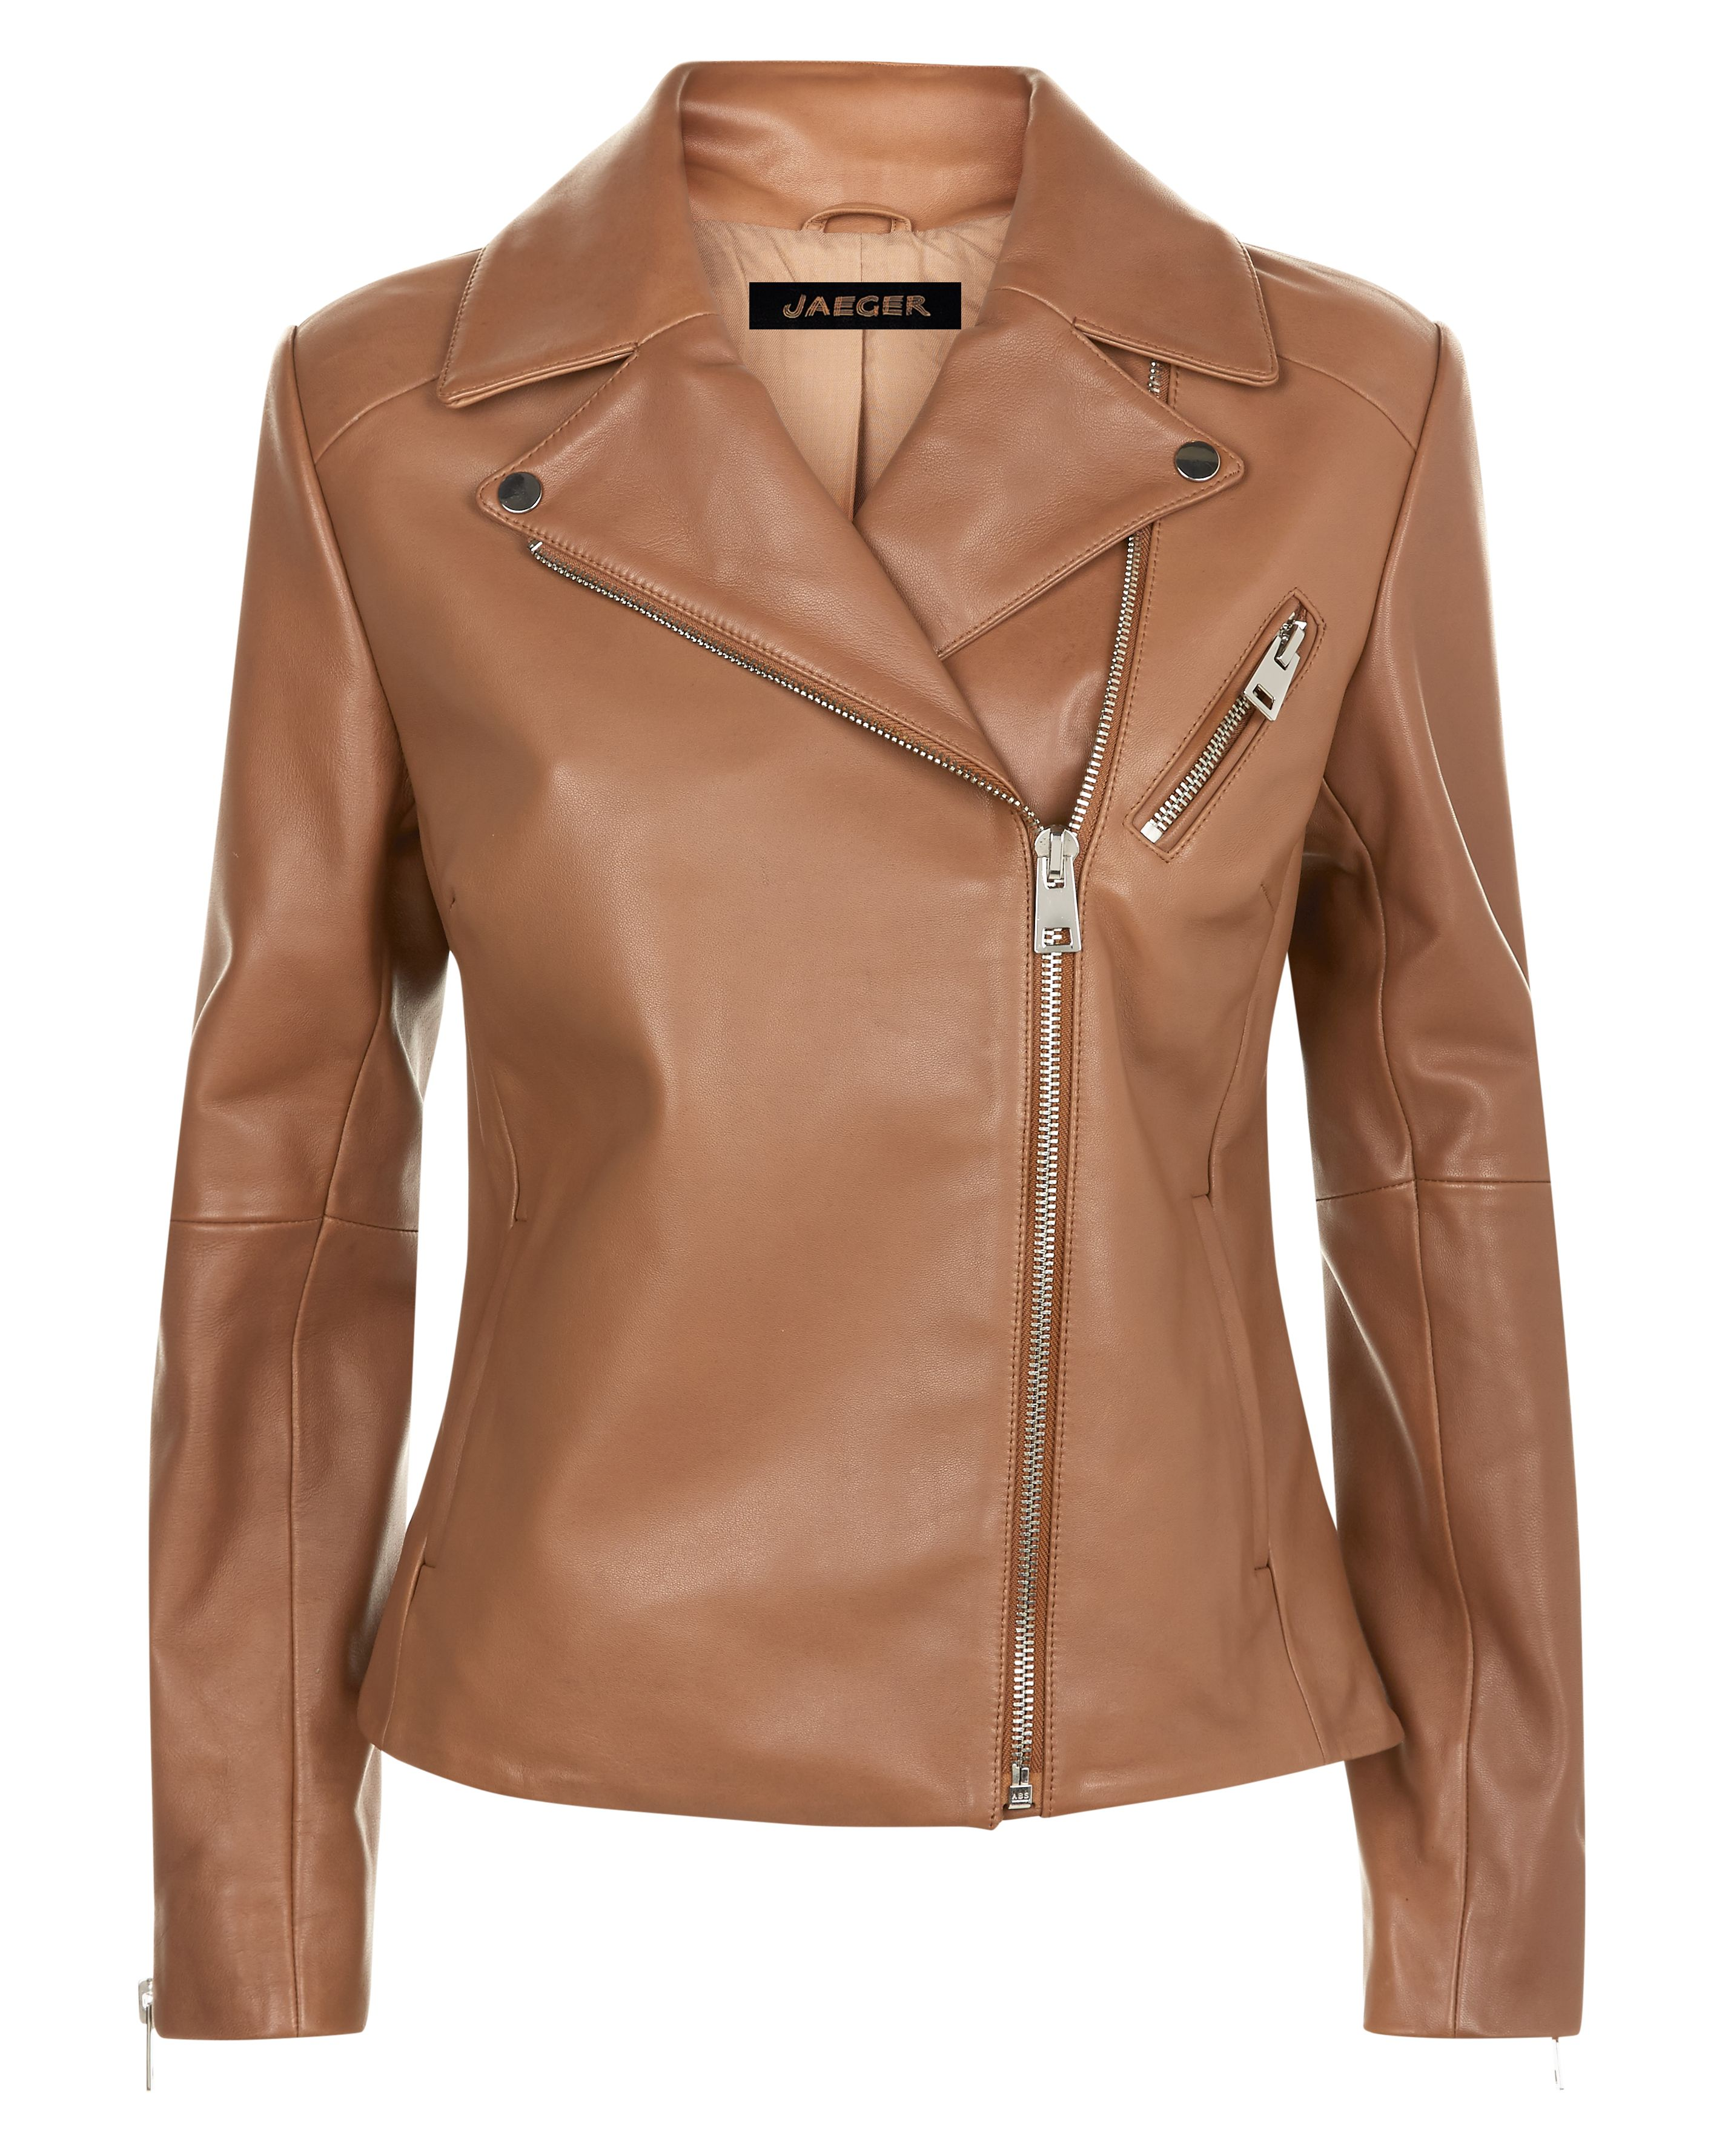 Jaeger Leather Biker Jacket, Camel